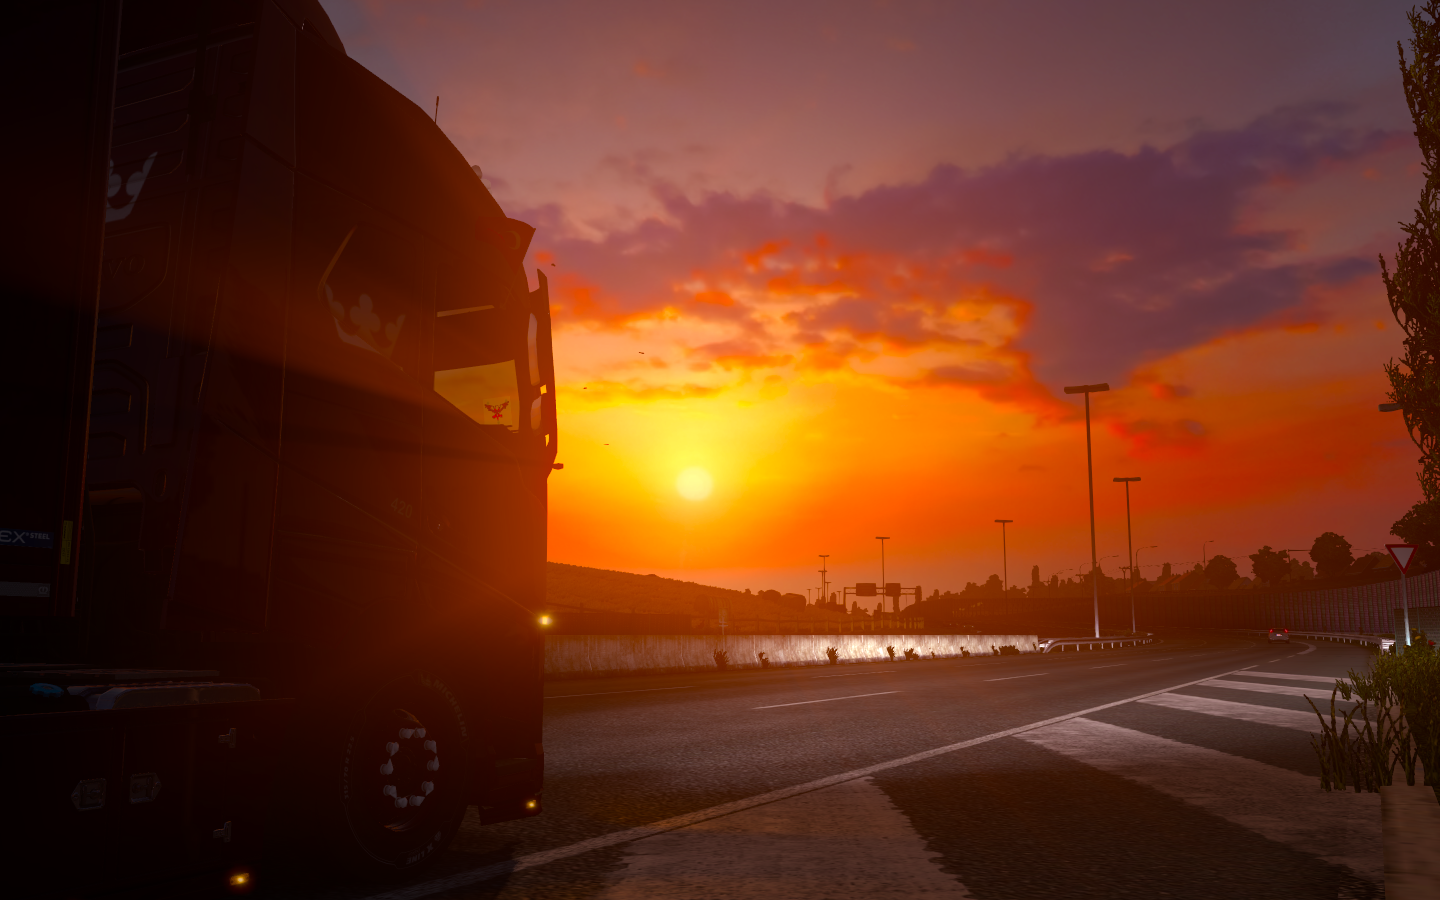 ets2_20190520_201716_00.png